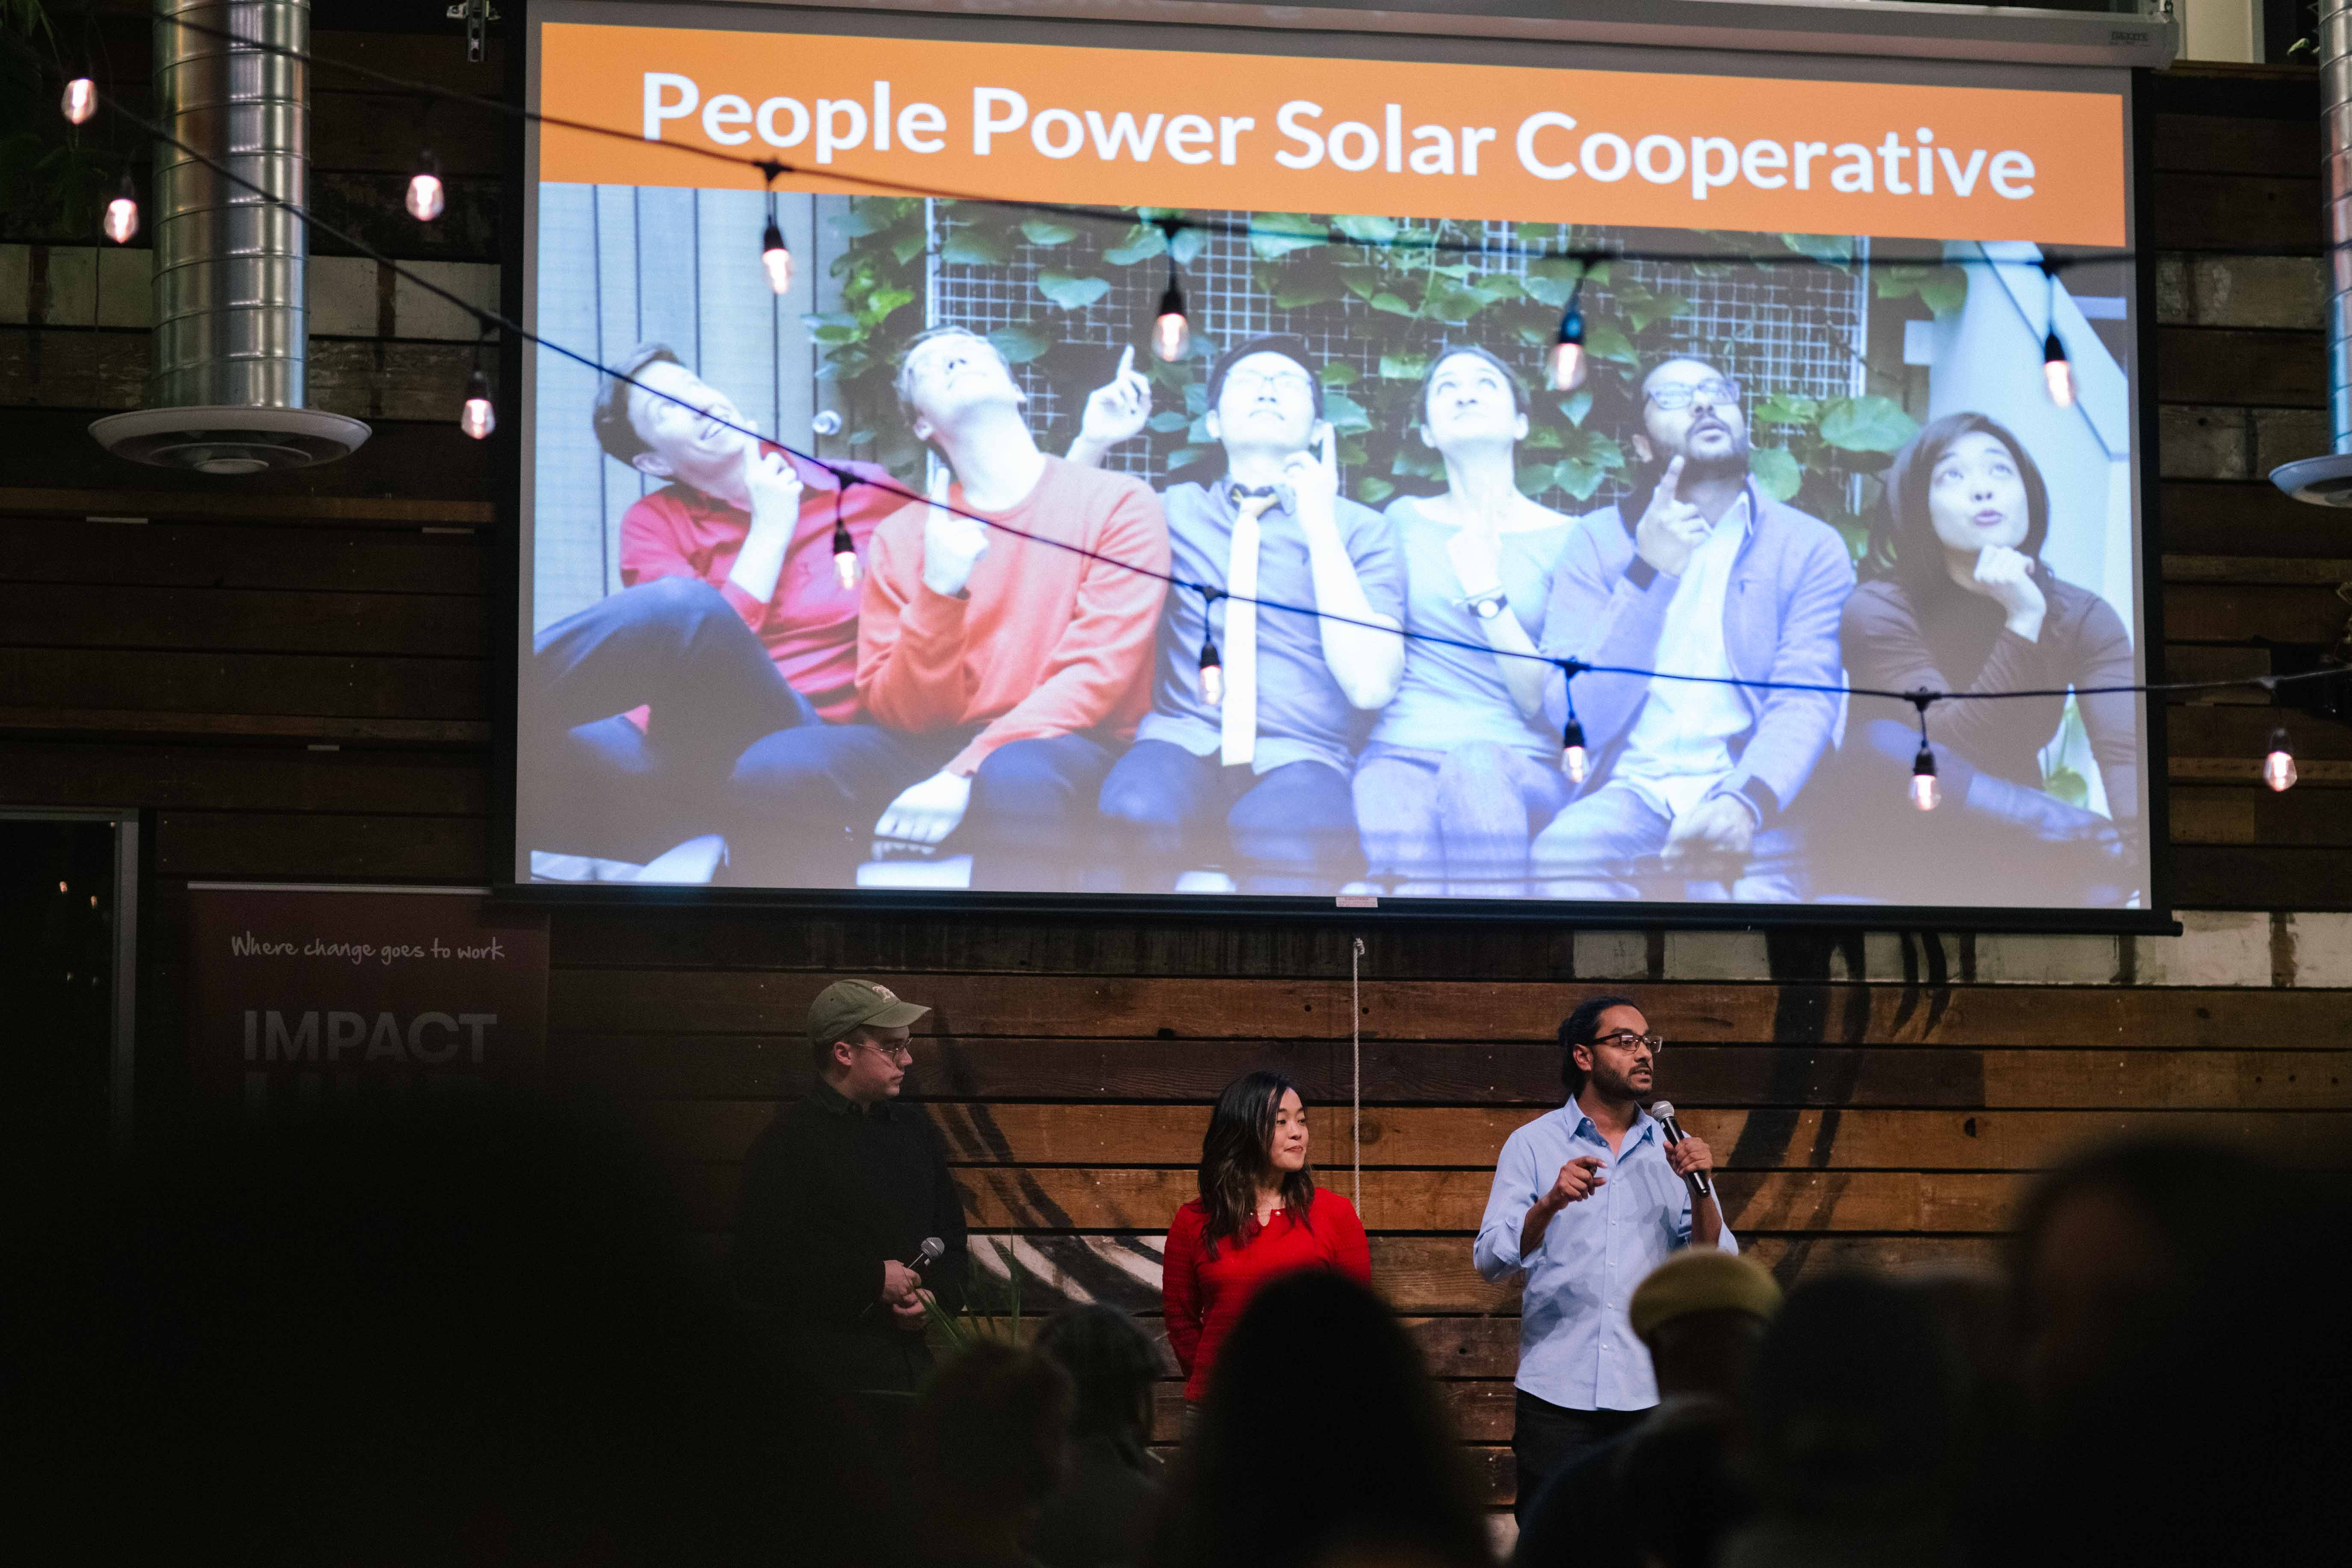 People Power Solar